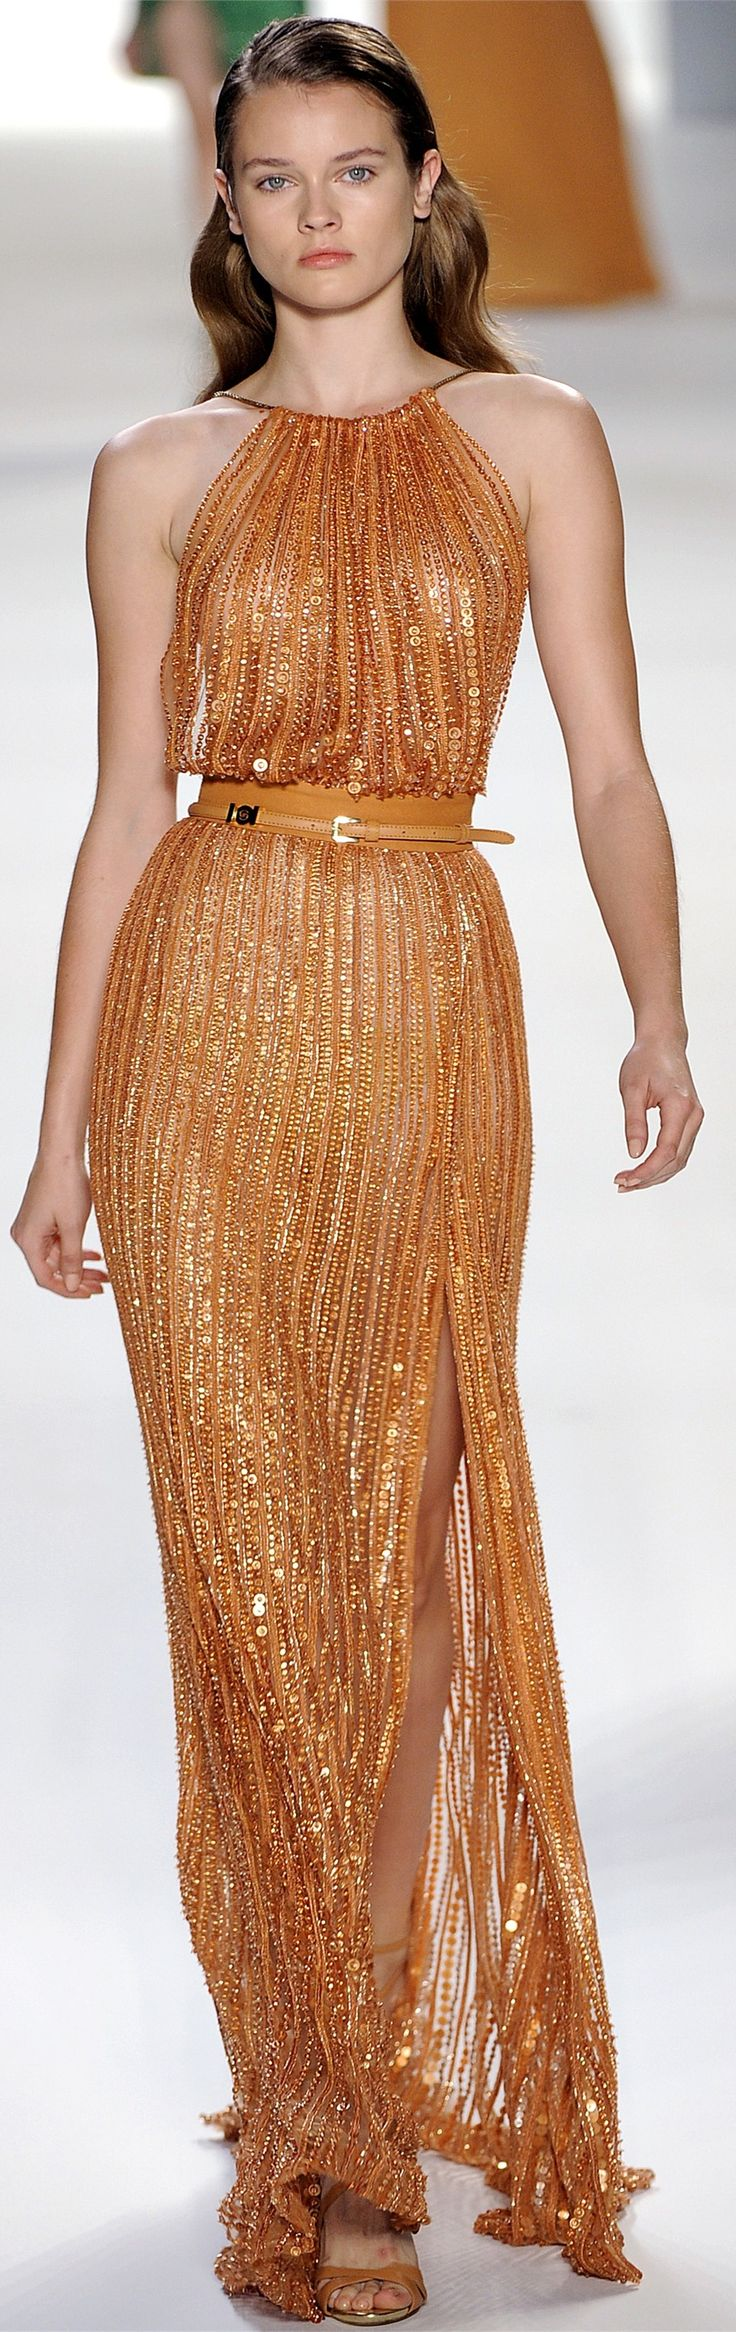 Elie Saab ~ Copper Metallic Halter Maxi 2012 bridesmaid dress